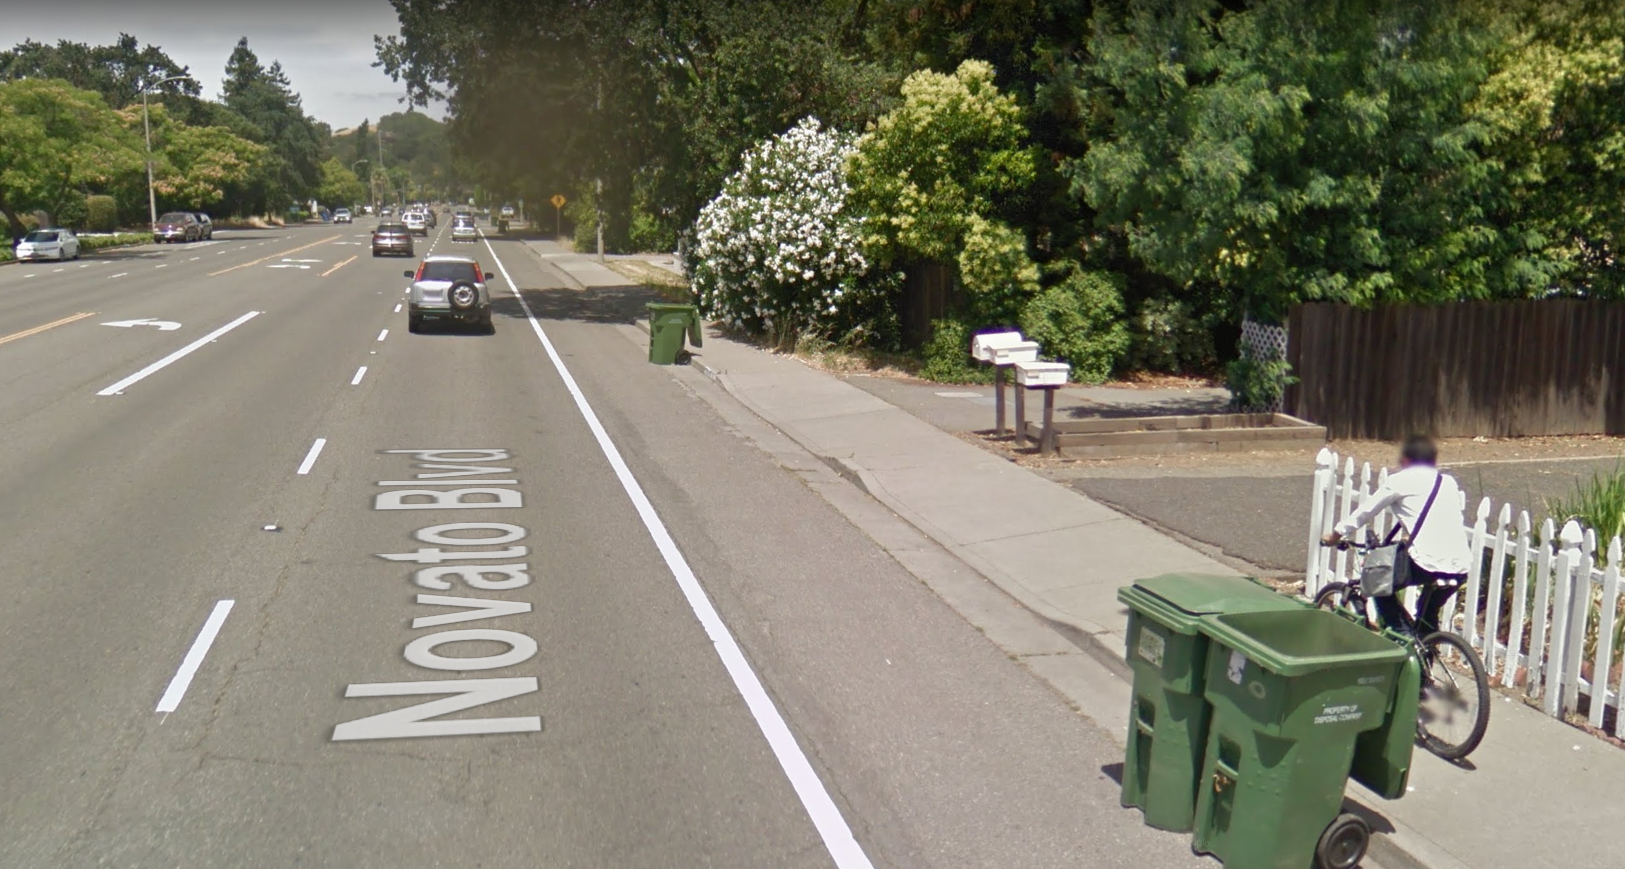 Every person riding a bike on a sidewalk is a vote for protected bike lanes. Image from Google Streetview, 2016.